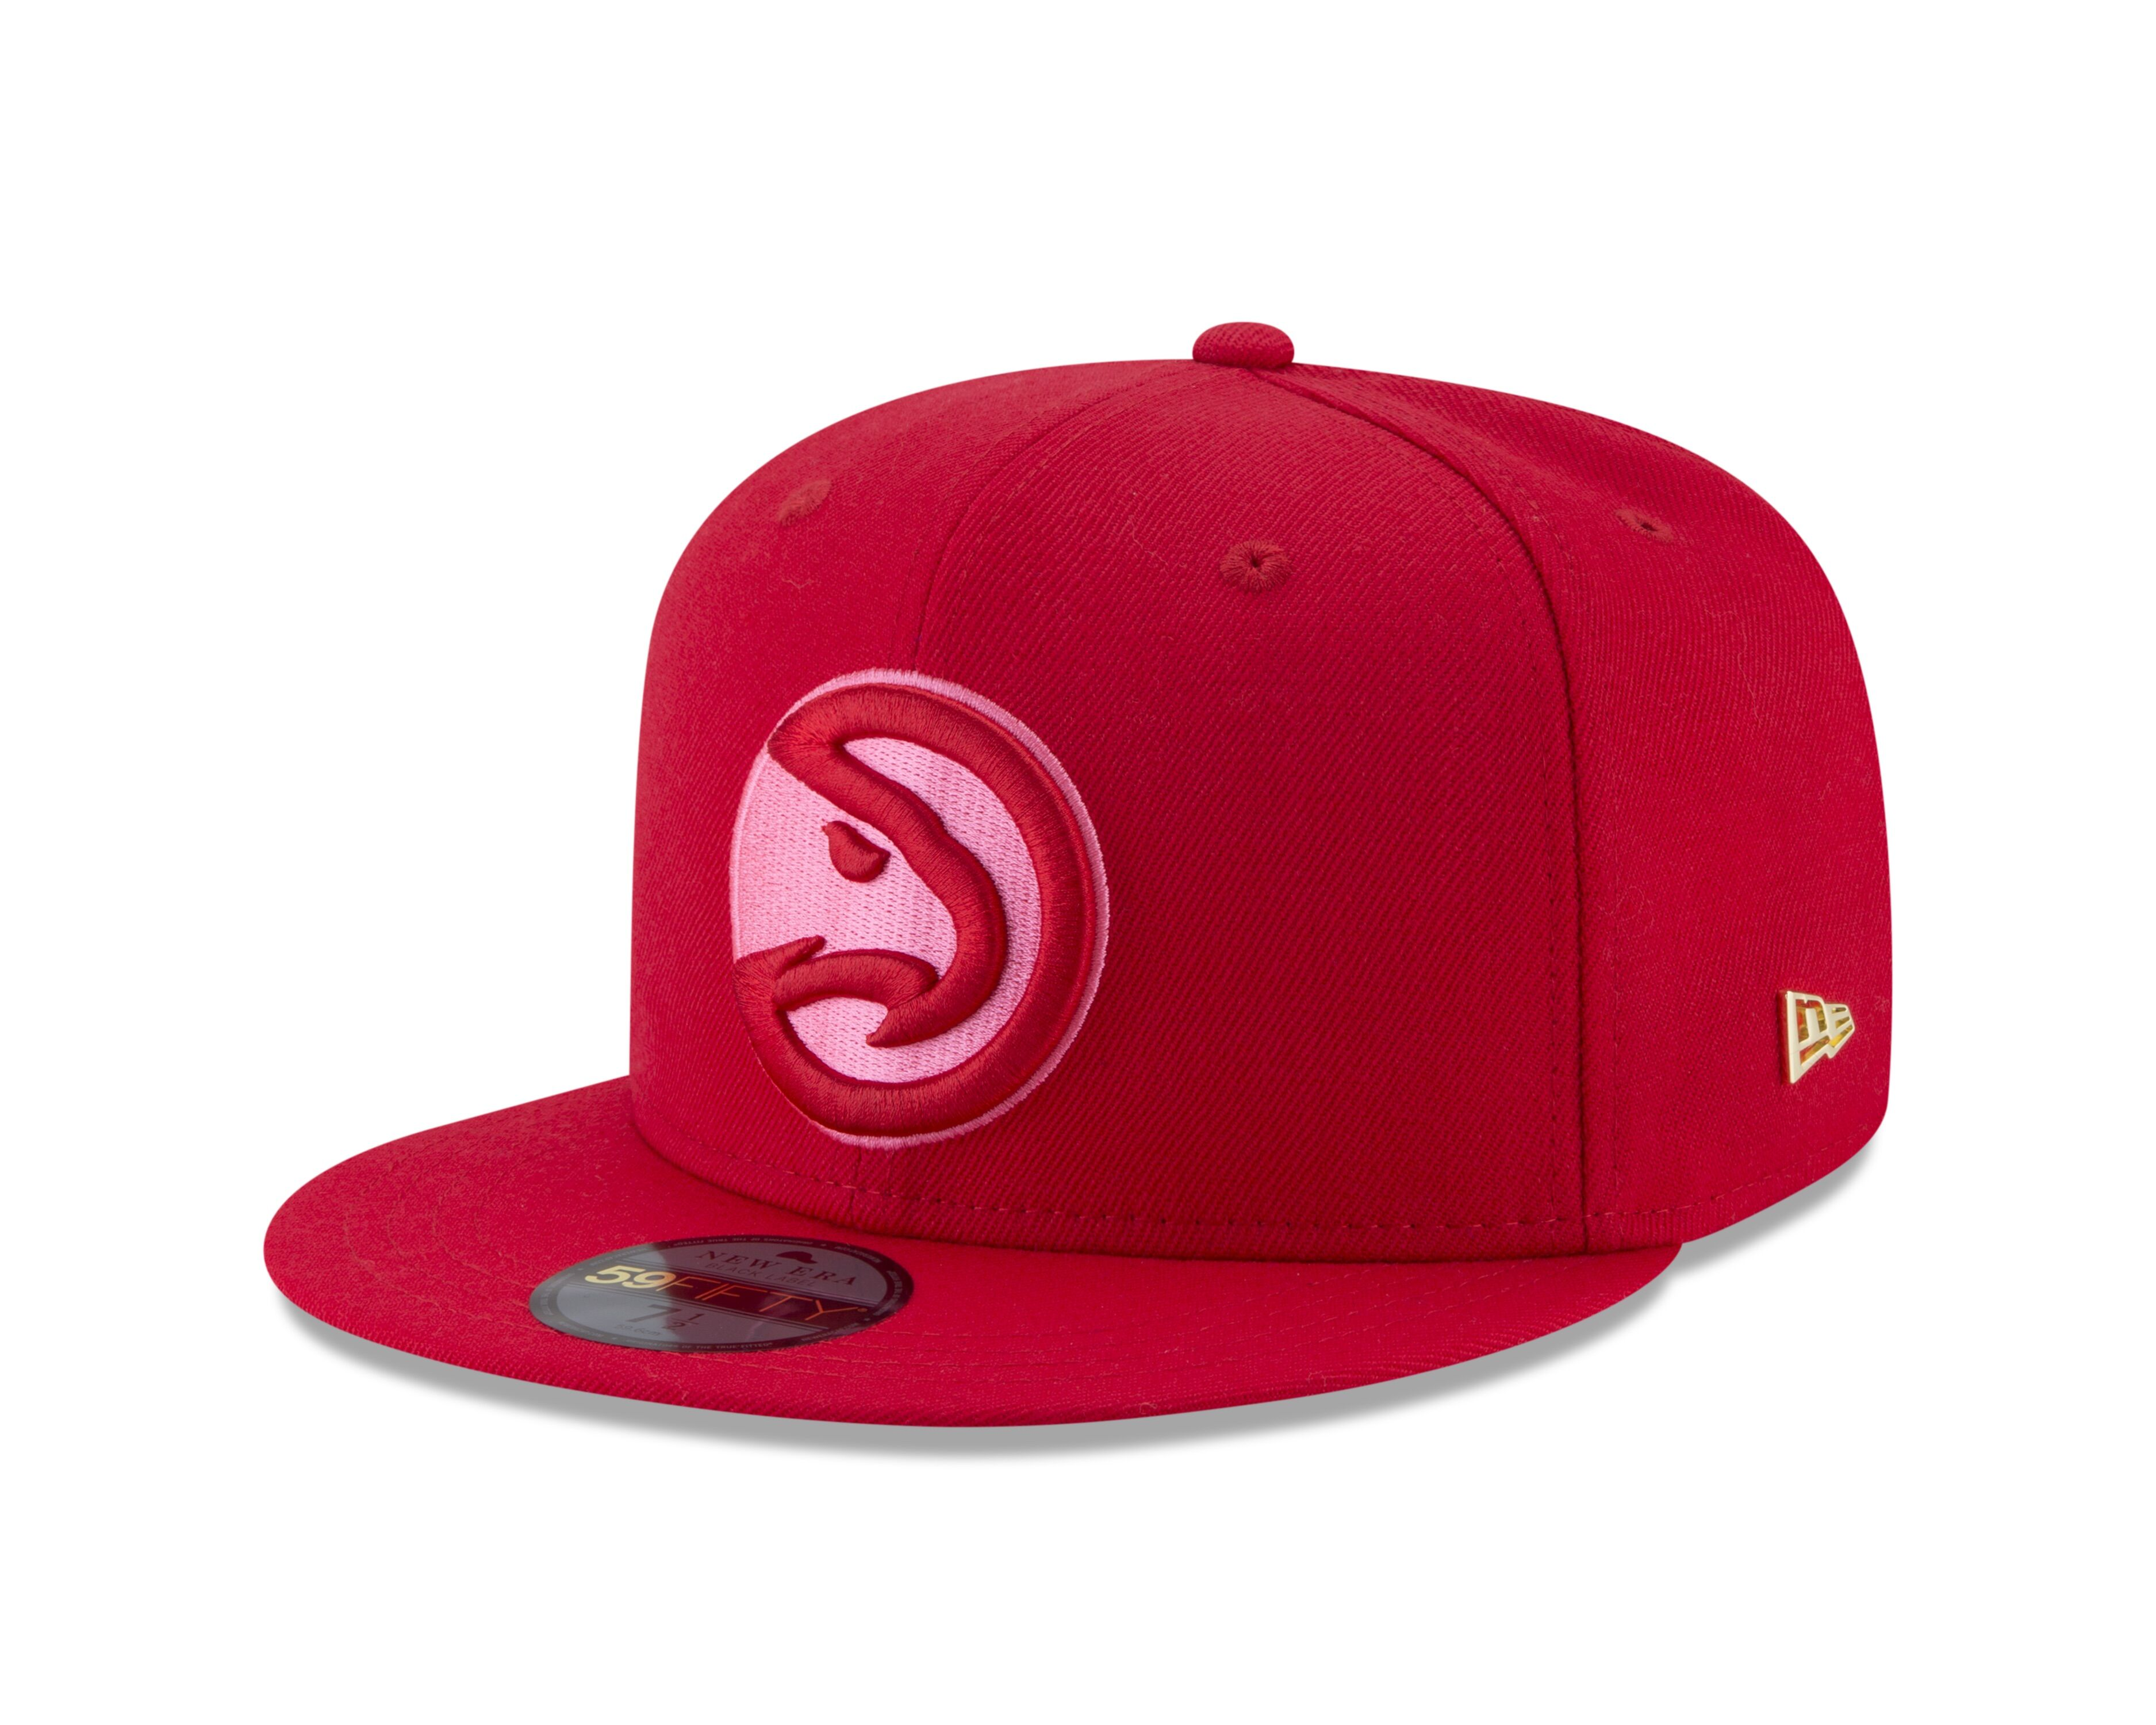 d2b59eae517 New Era Black Label NBA line allows fans to share players  style ...